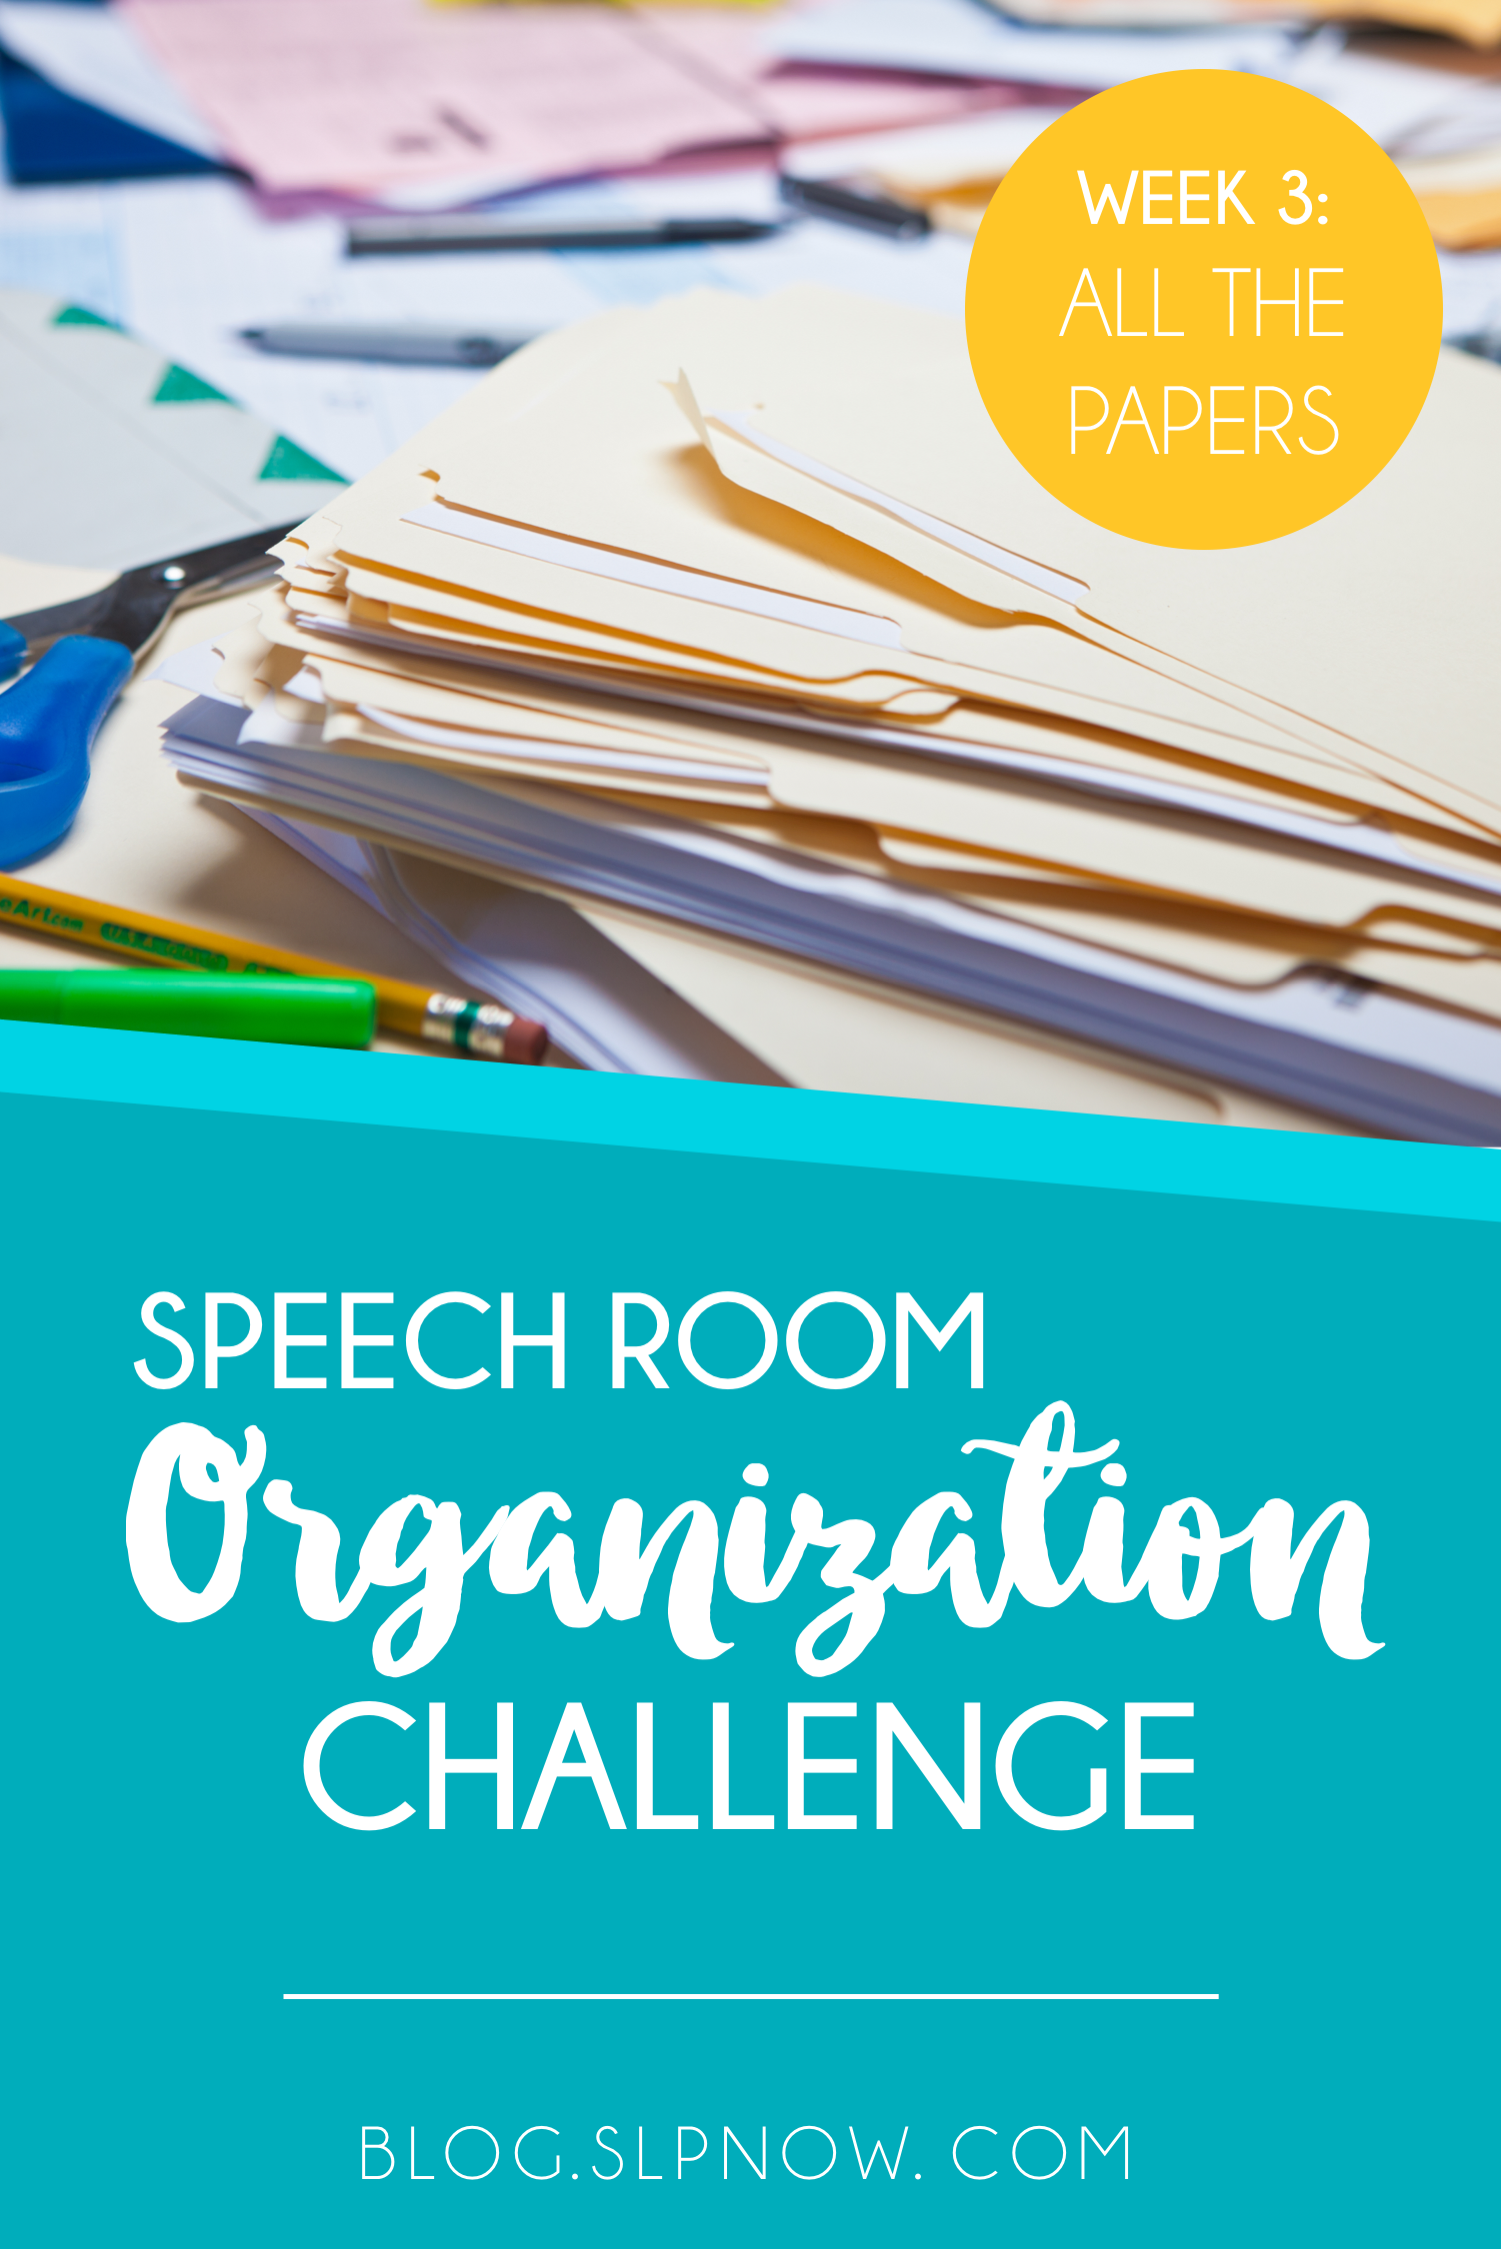 Paper overwhelm? Between therapy materials, IEP documentation, and everything else, it's easy for speech therapists' rooms to get cluttered and disorganized. Check out this list of tools to help you organize the paper materials in your speech room!